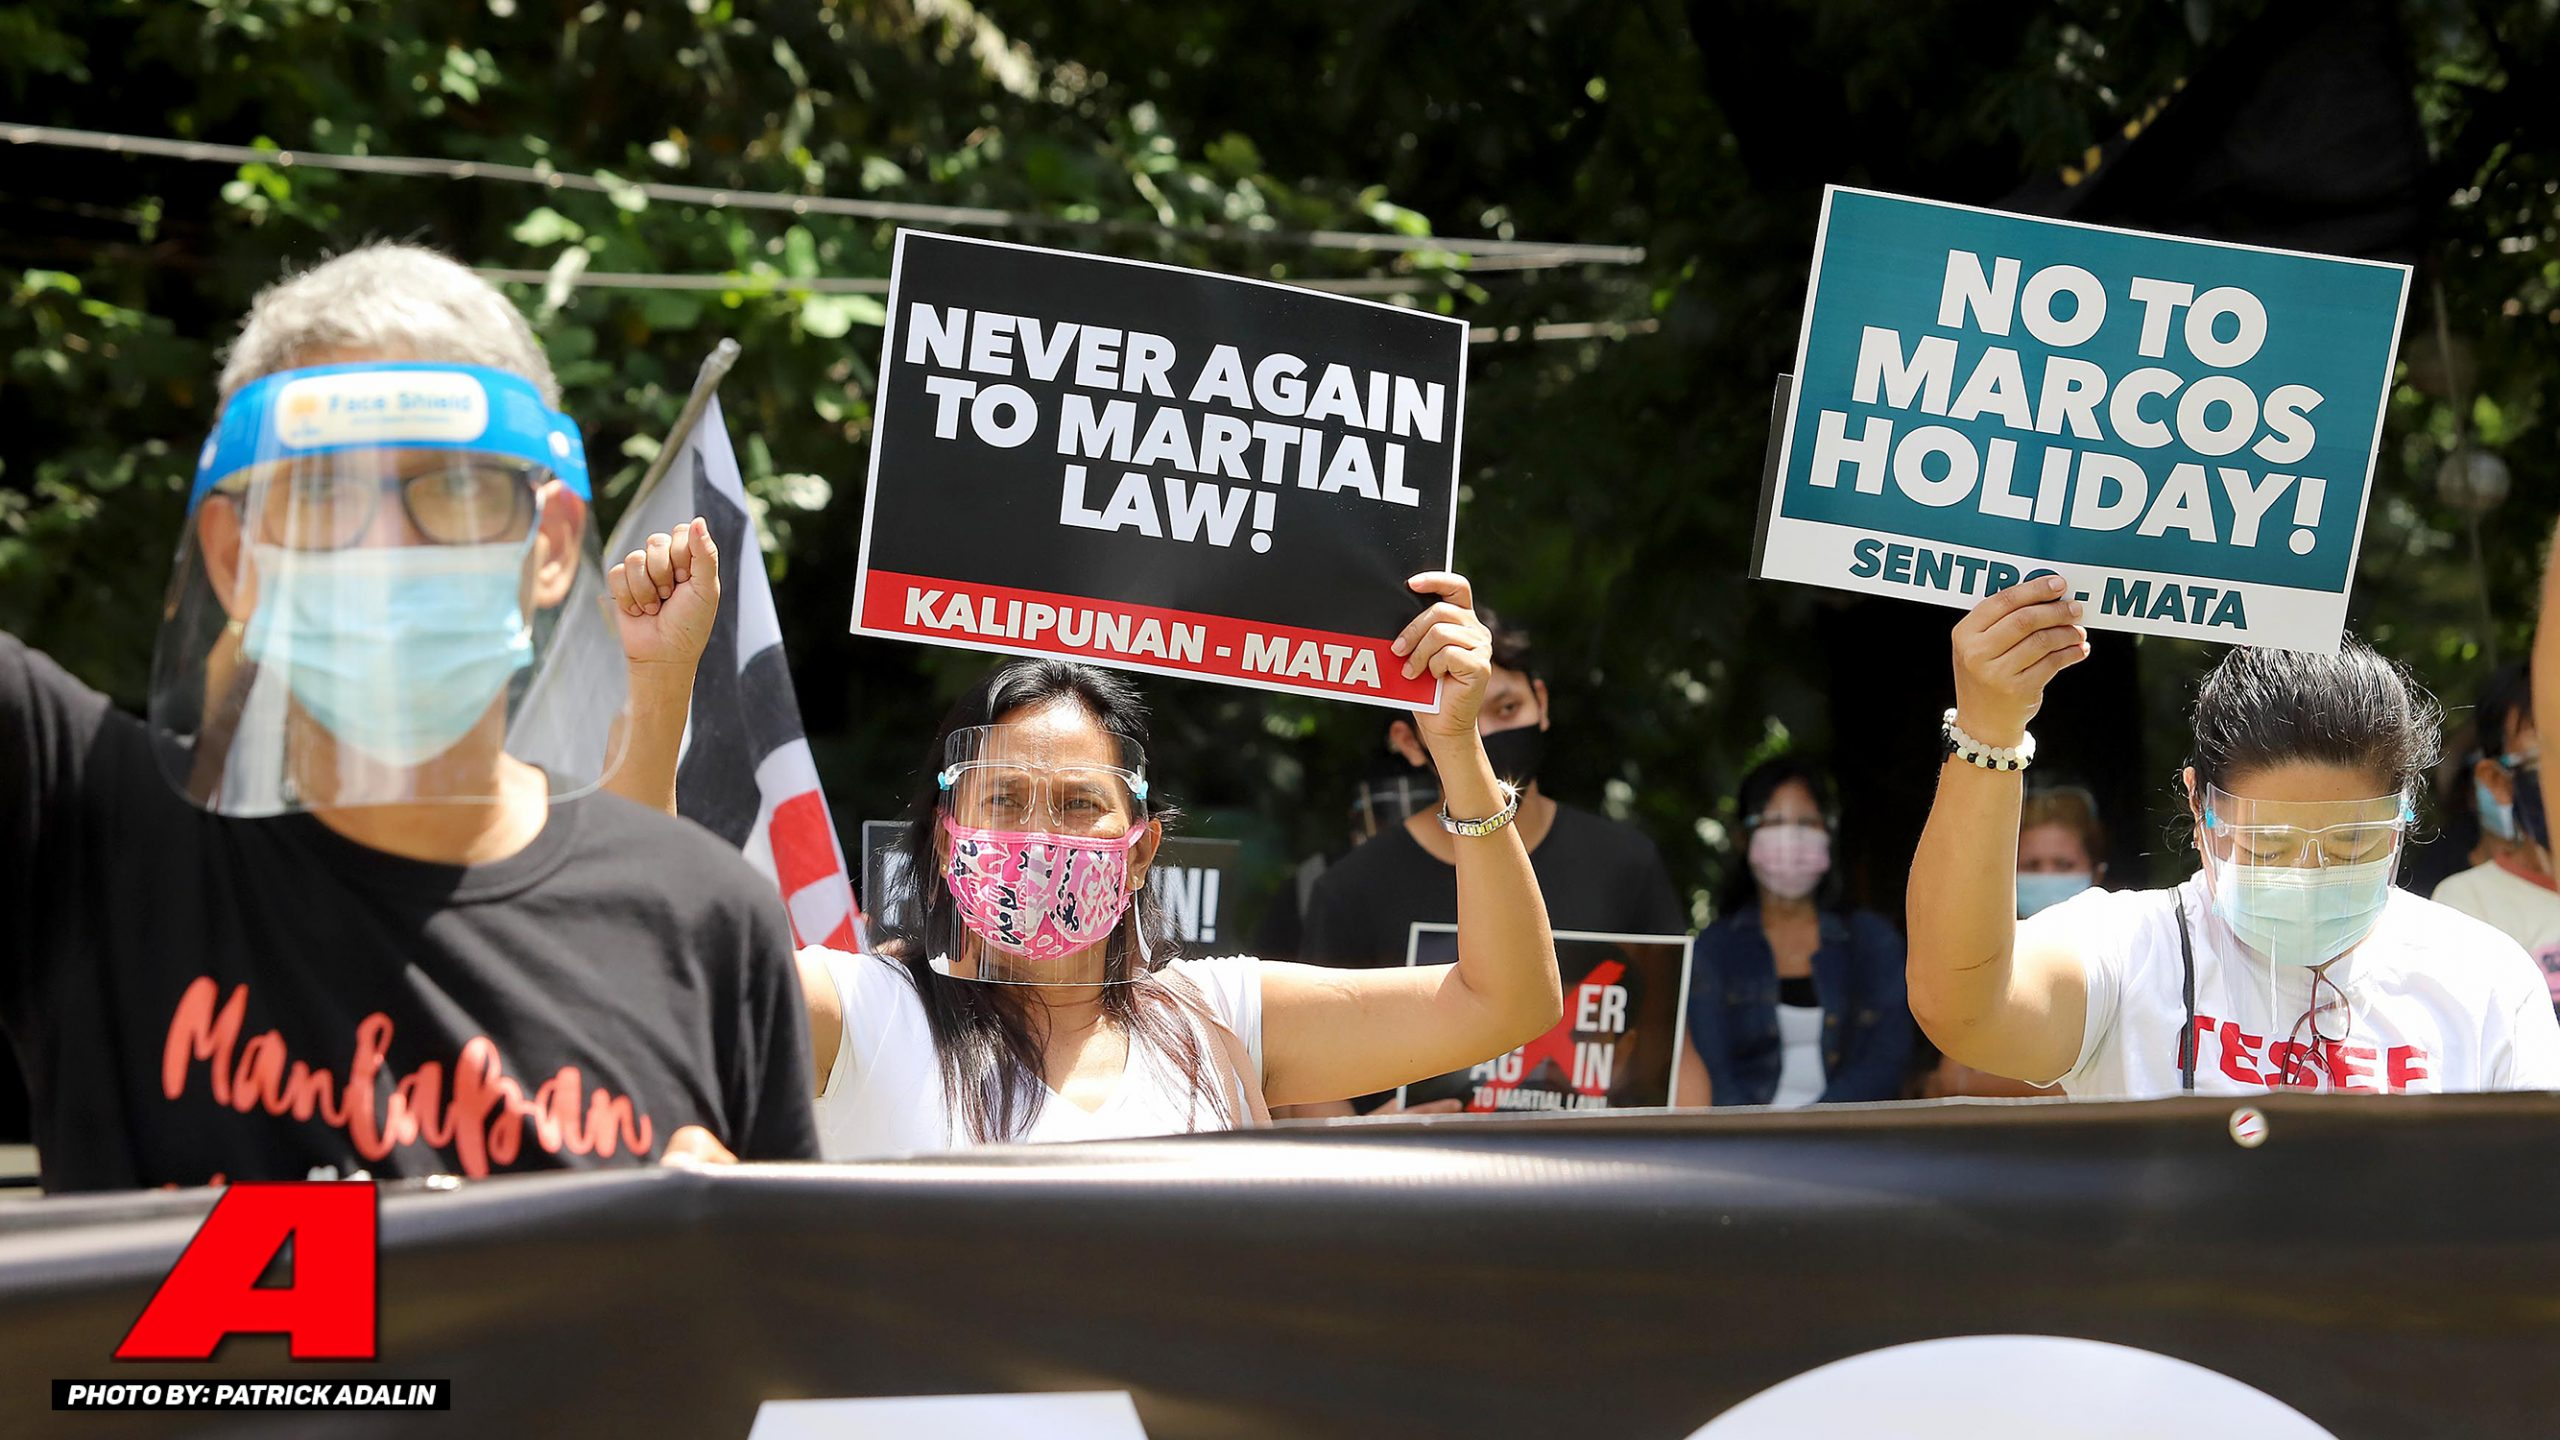 Sigaw ng raliyista sa Martial Law: NEVER AGAIN!